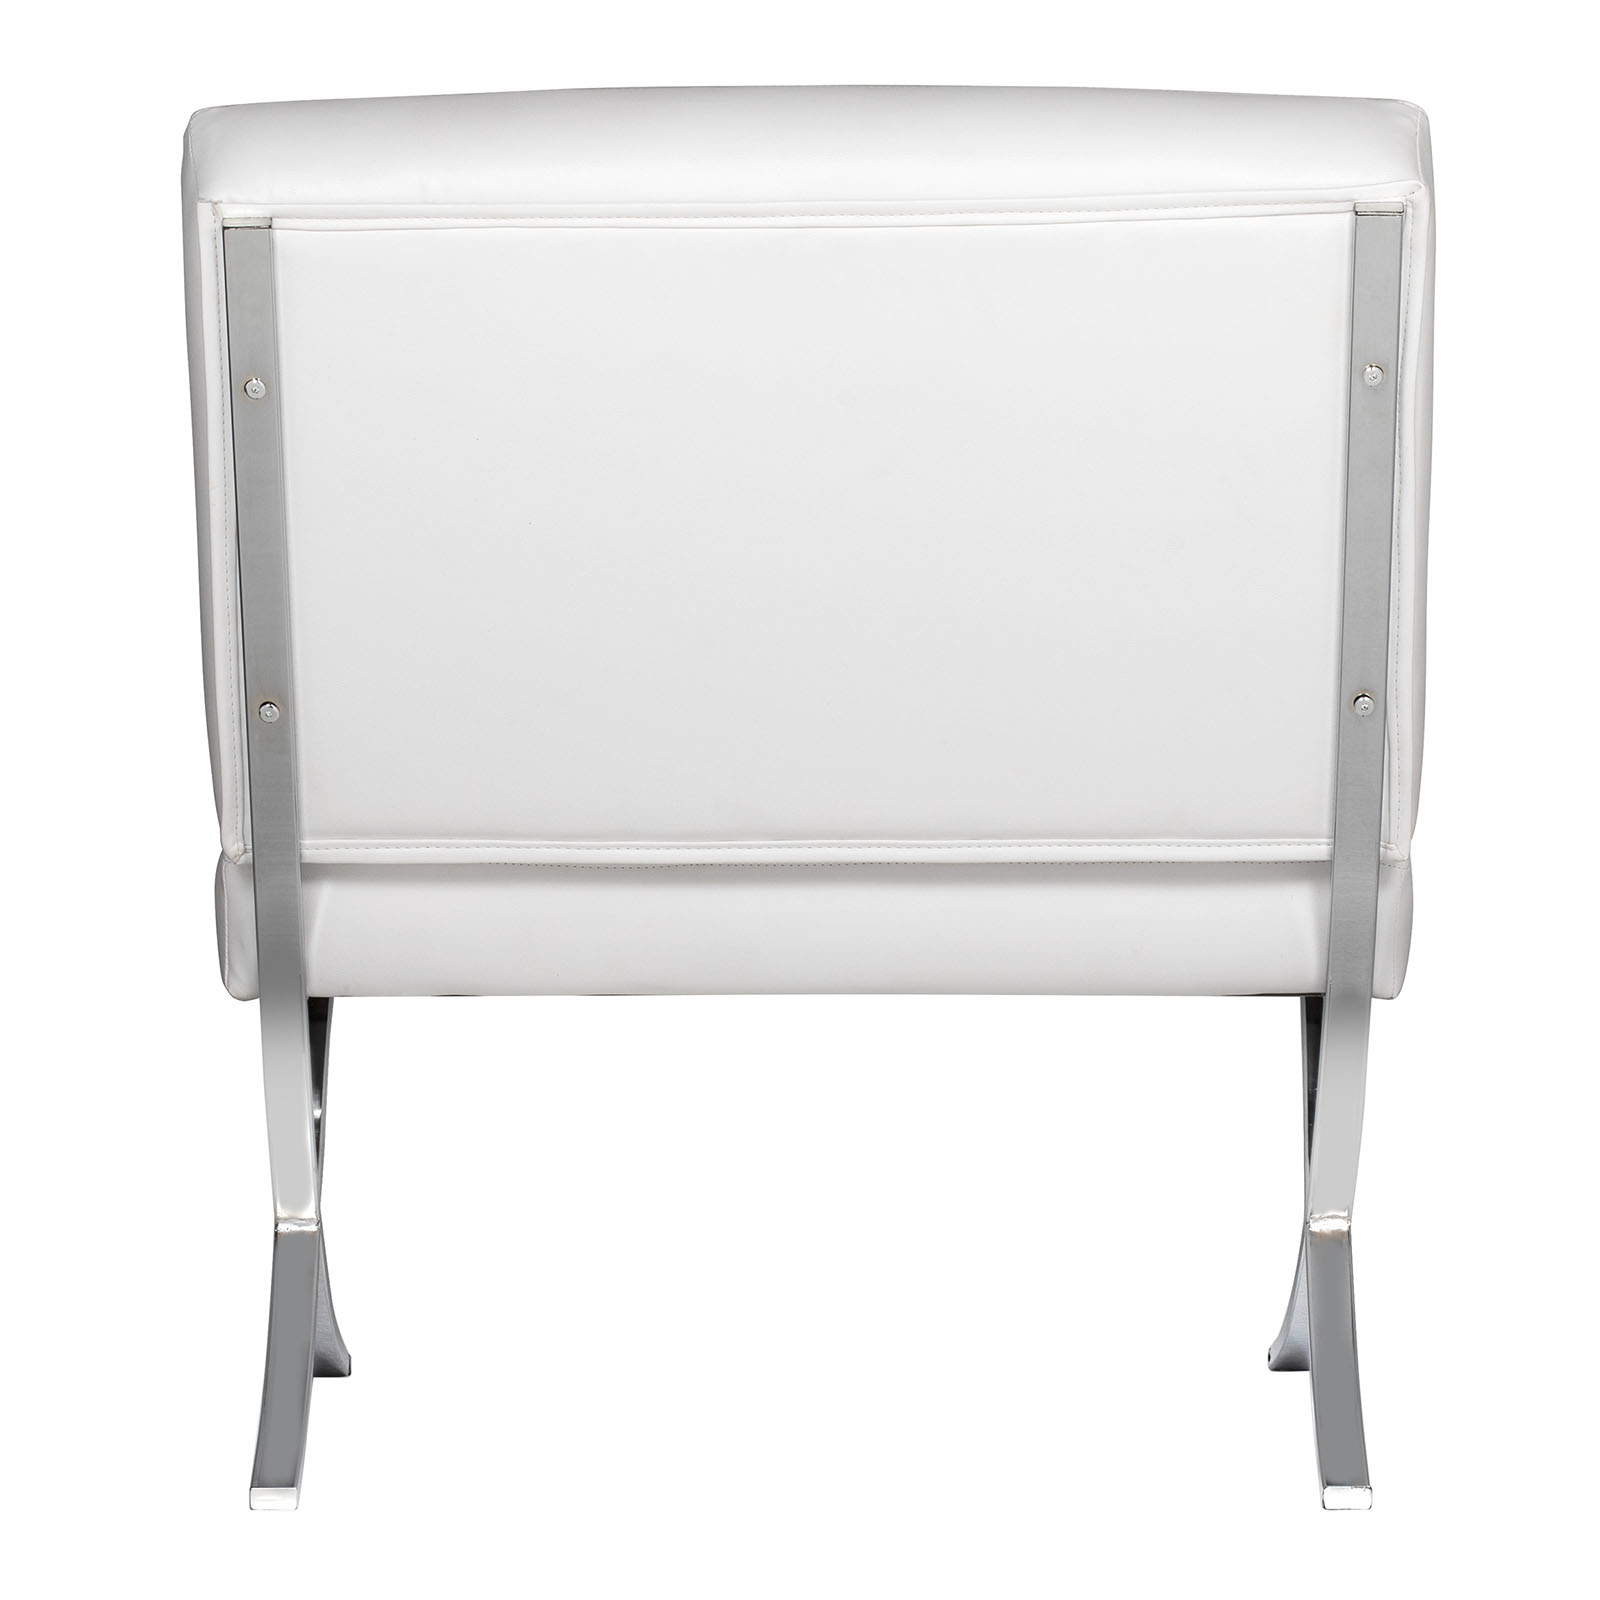 70202 Atrium Chair rear